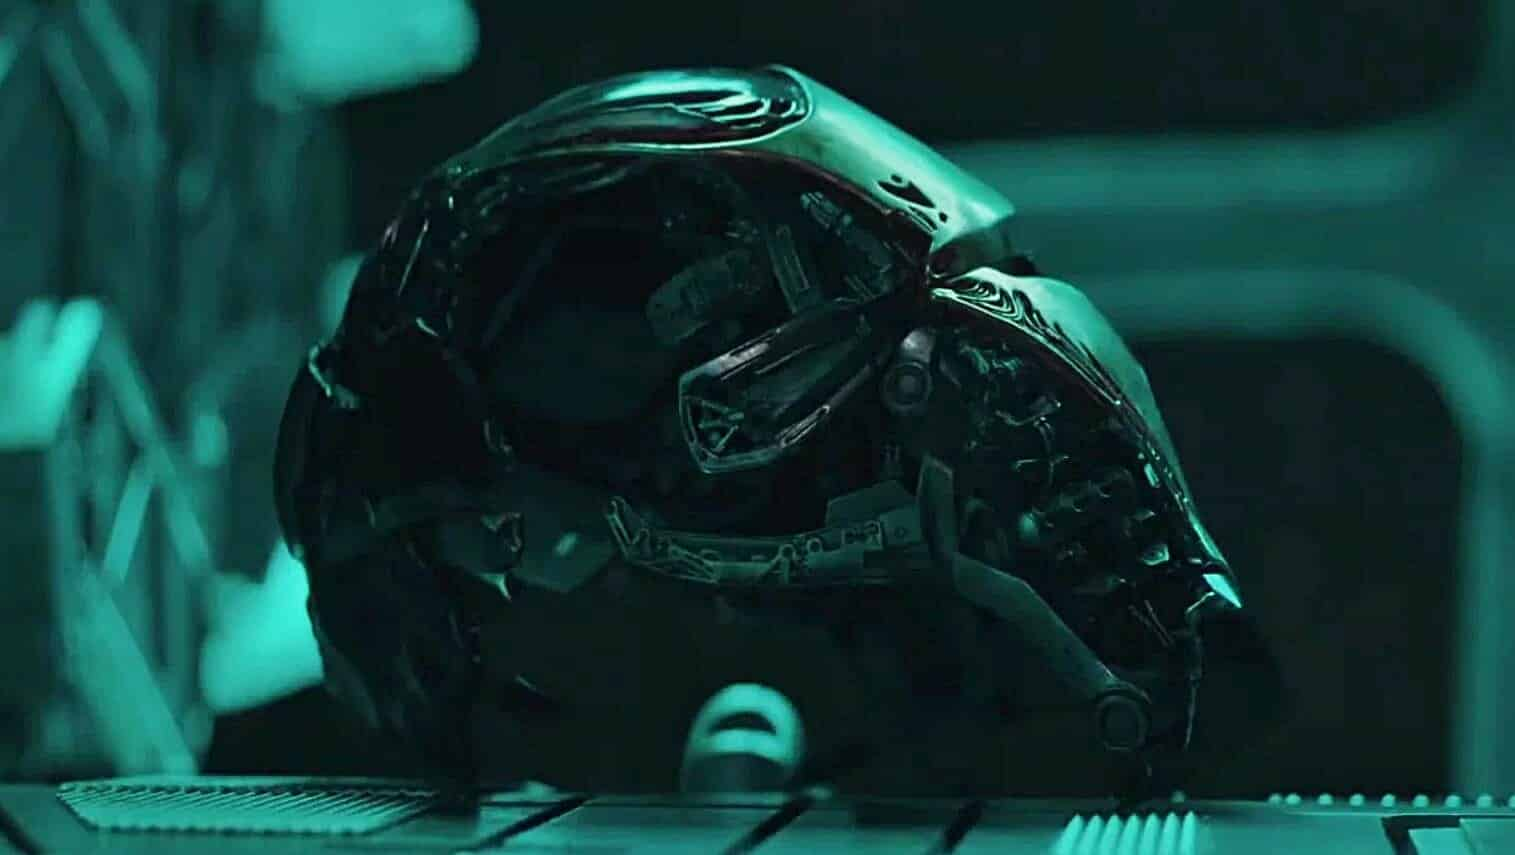 Avengers: Endgame News: 'Avengers: Endgame' New Footage Rumored To Be Coming This Week